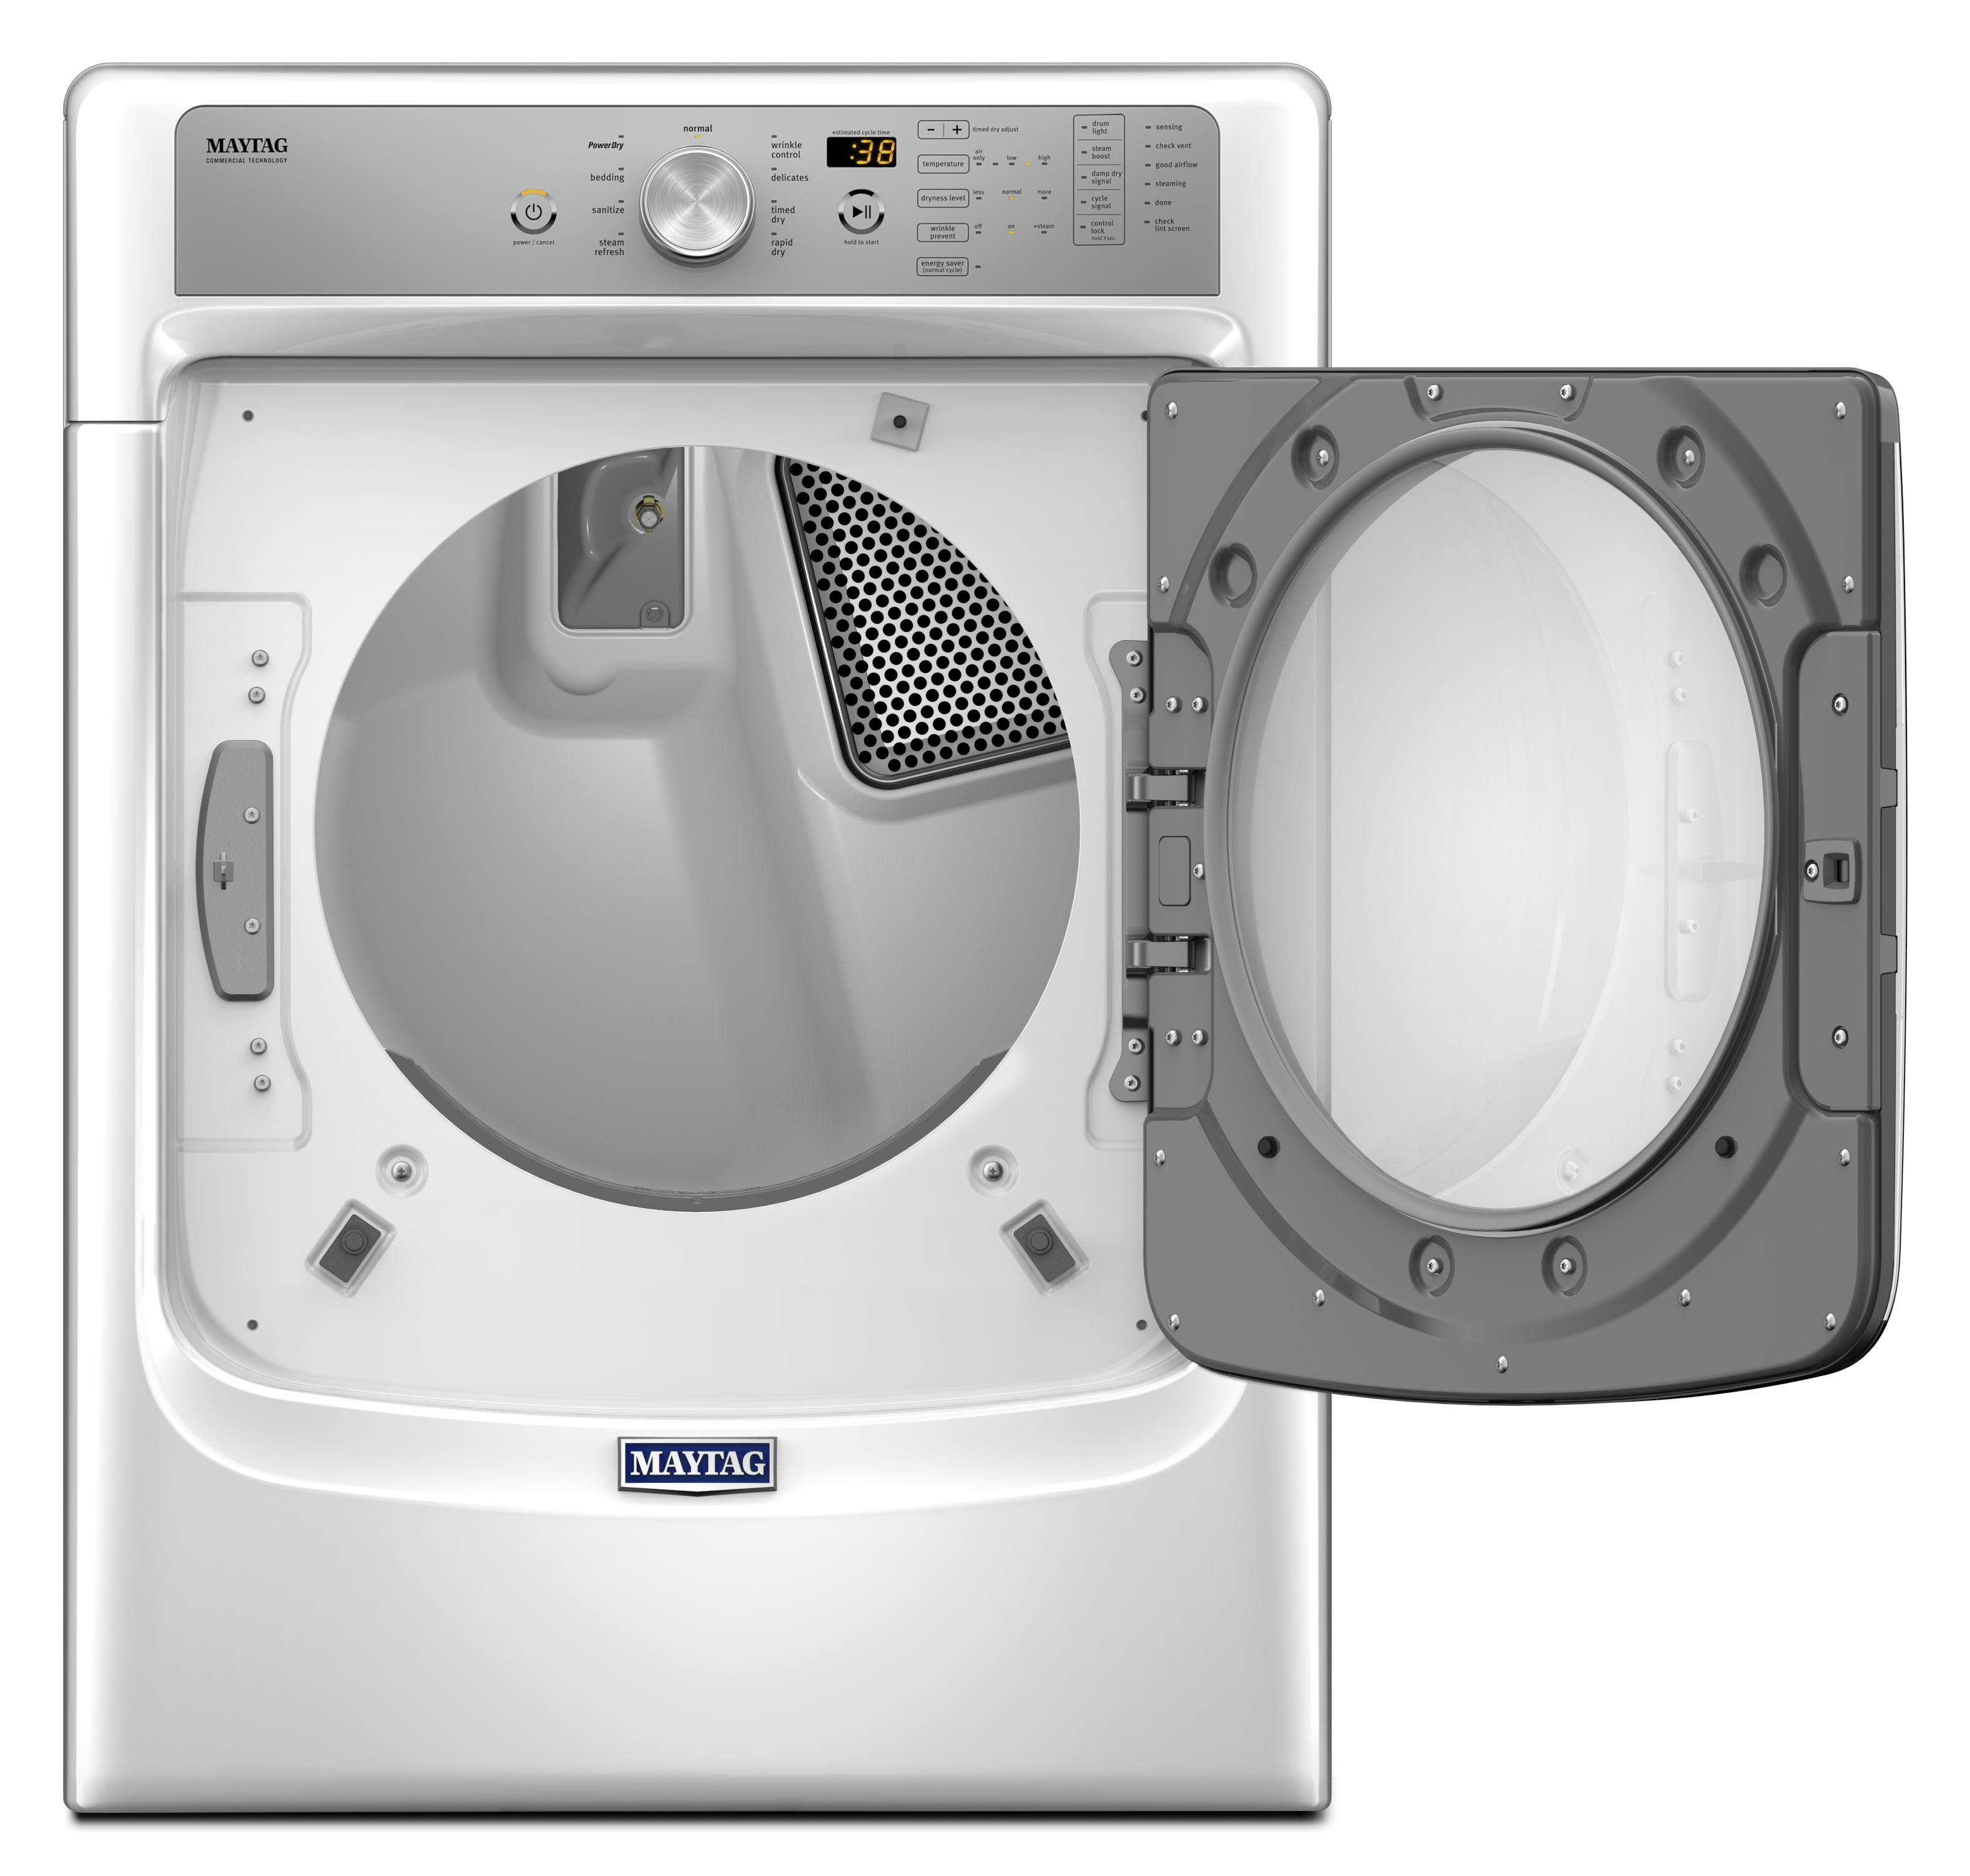 Maytag MED5500FW 7.4 cu. ft. Electric Dryer w/ Sanitize Cycle and PowerDry System - White